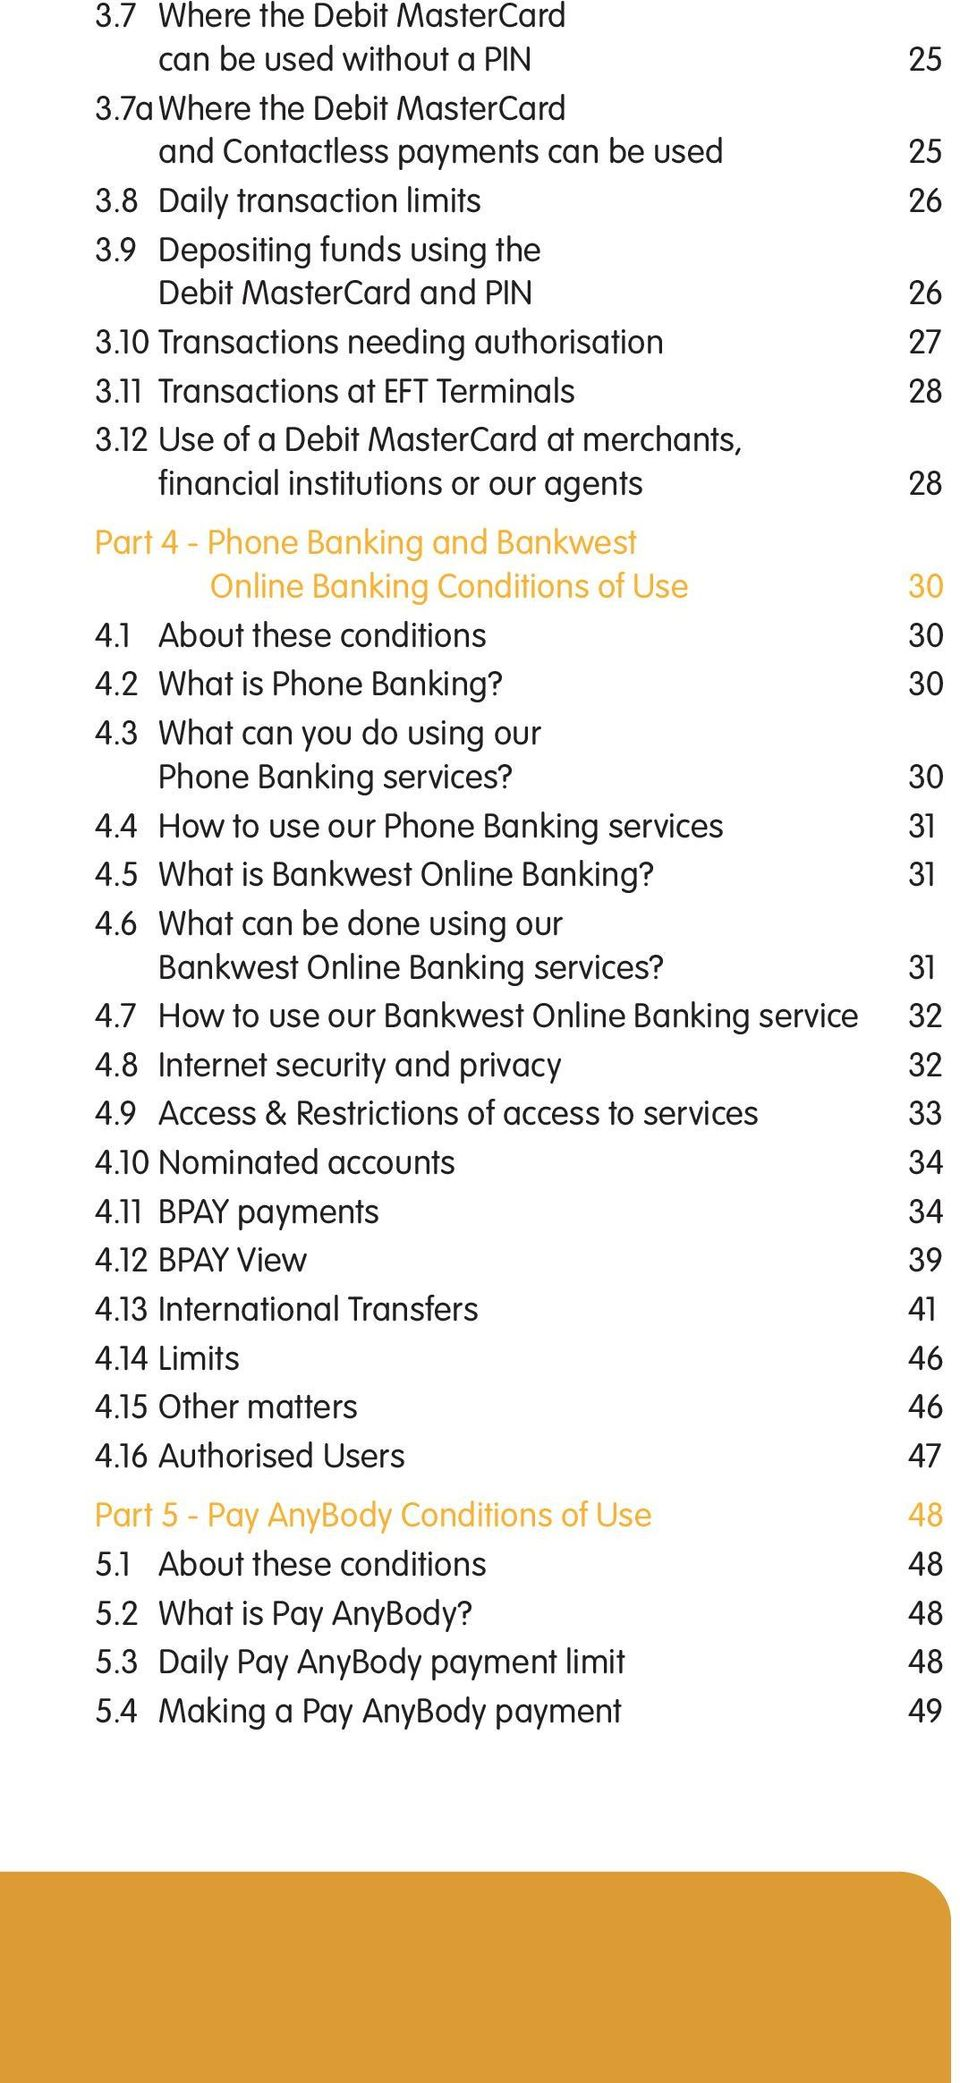 12 Use of a Debit MasterCard at merchants, financial institutions or our agents 28 Part 4 - Phone Banking and Bankwest Online Banking Conditions of Use 30 4.1 About these conditions 30 4.